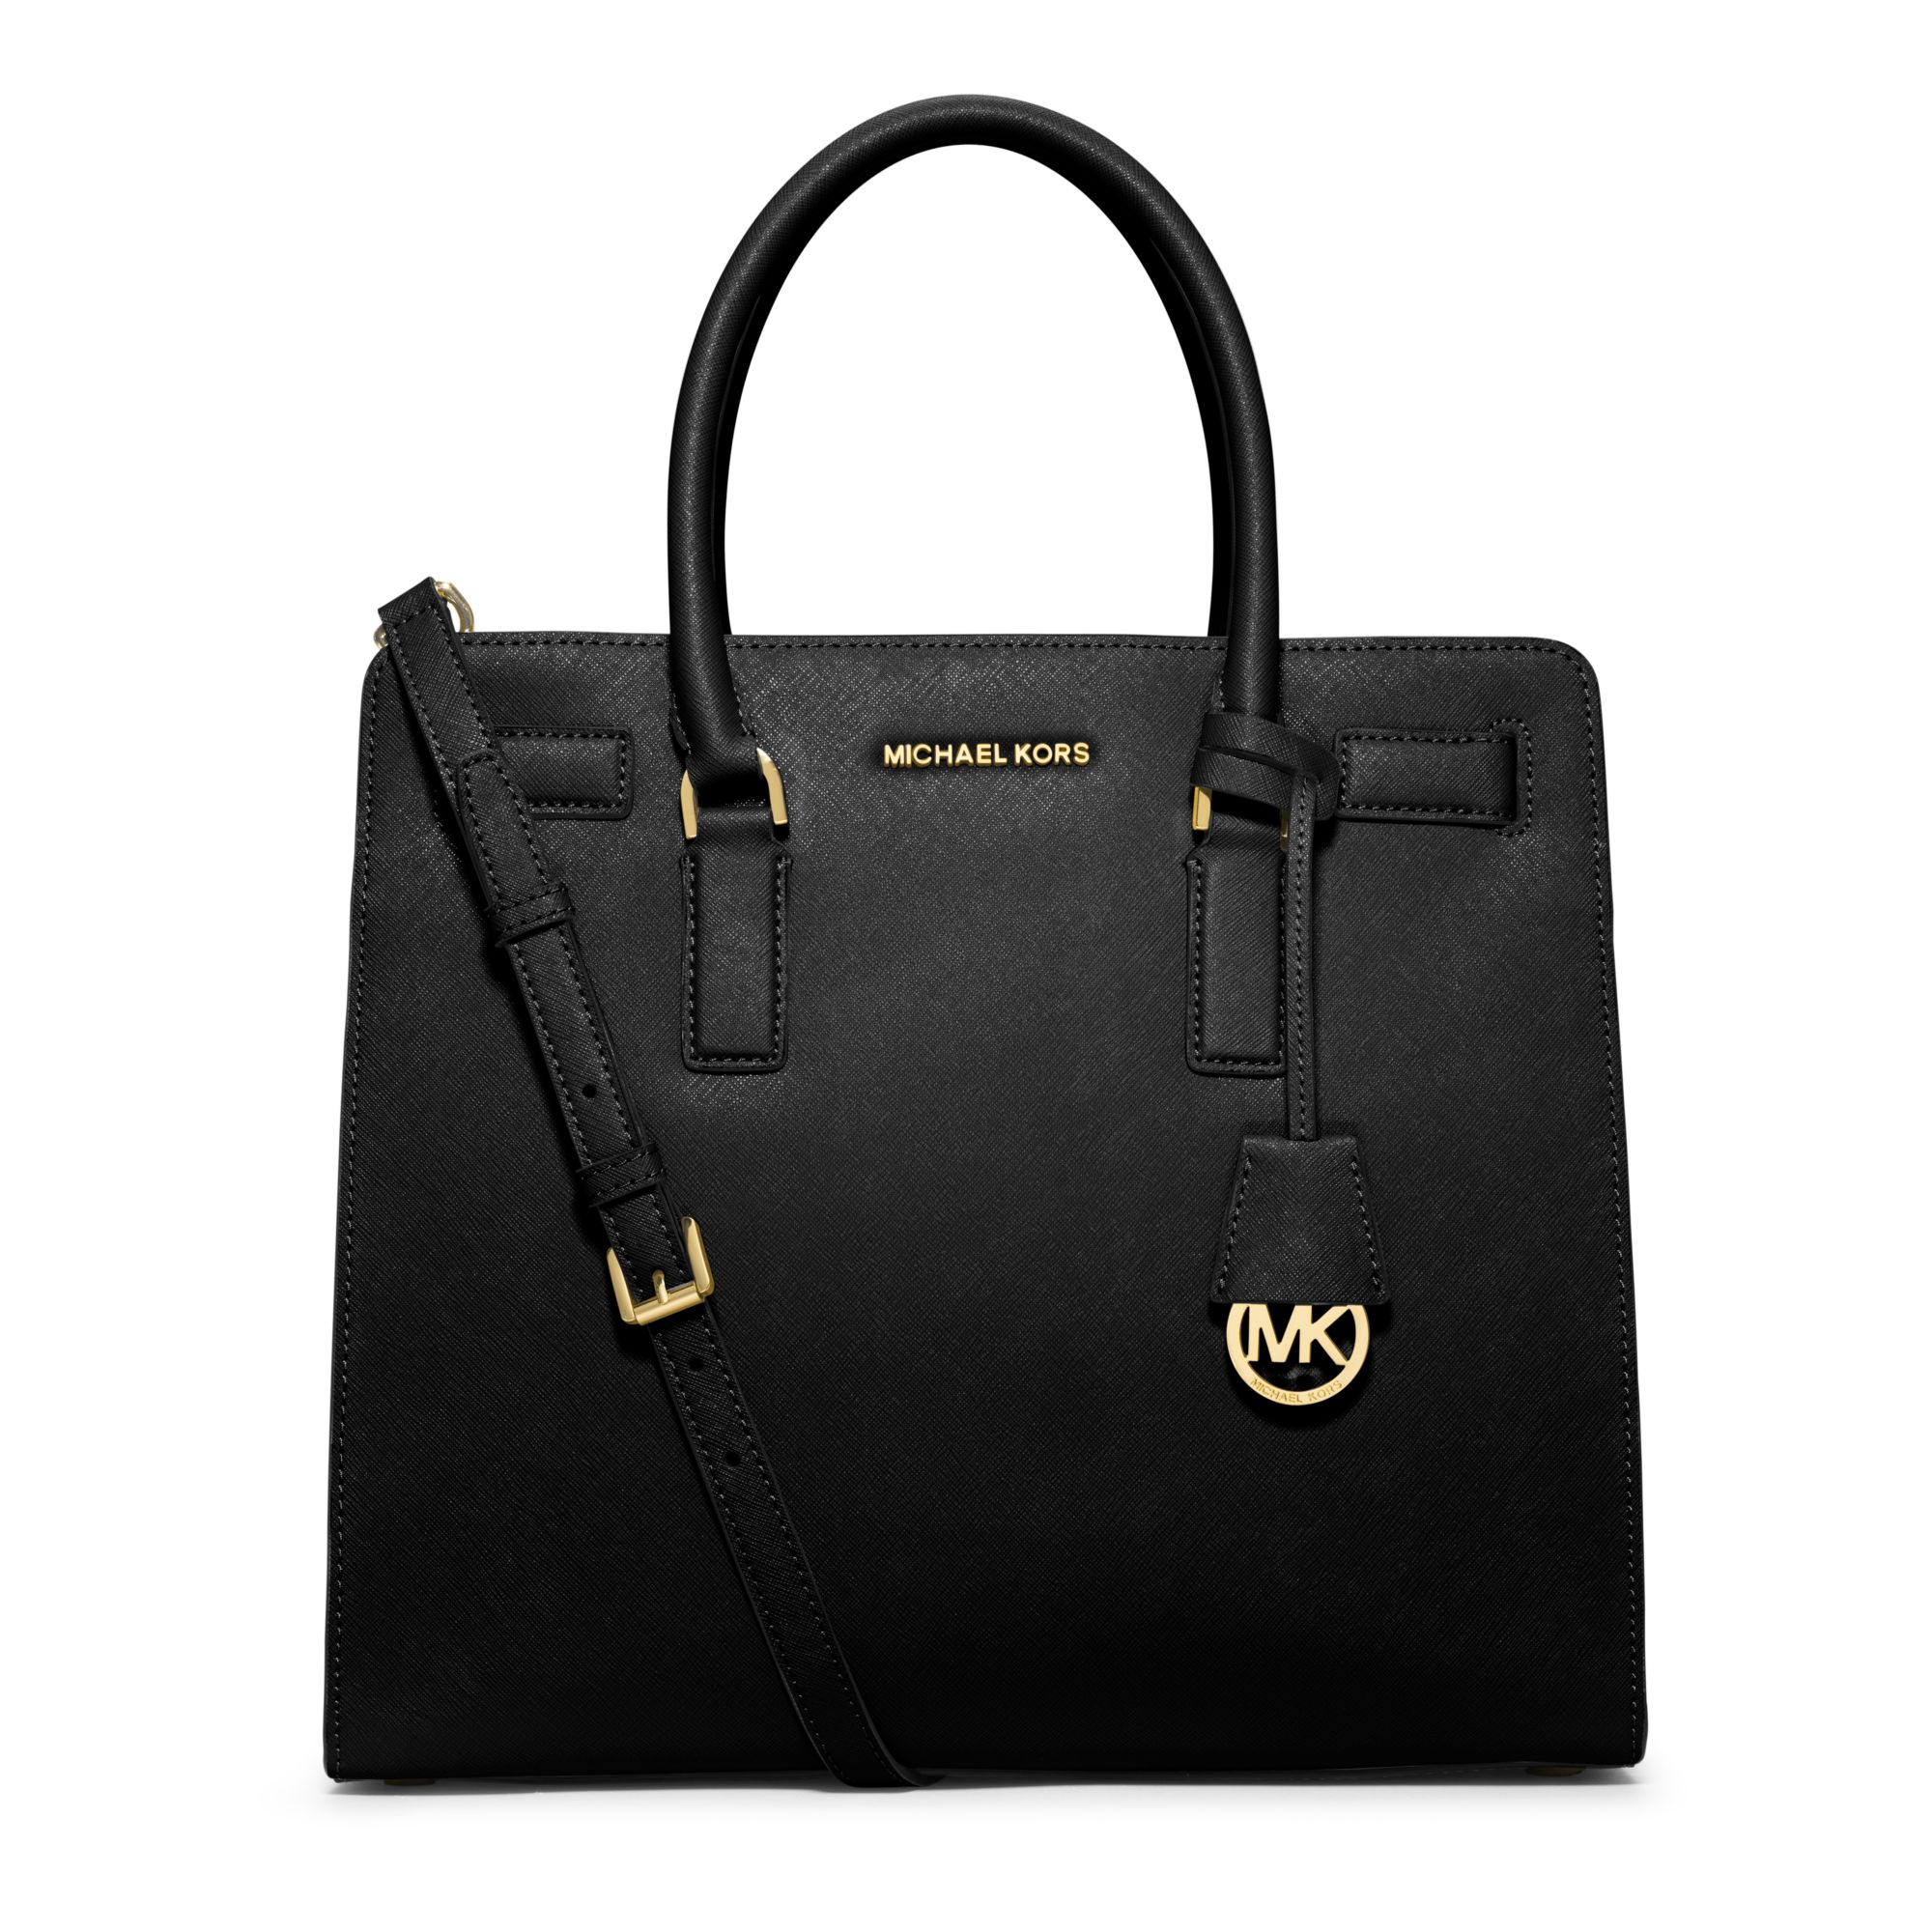 Lyst Michael Kors Dillon Large Saffiano Leather Tote In